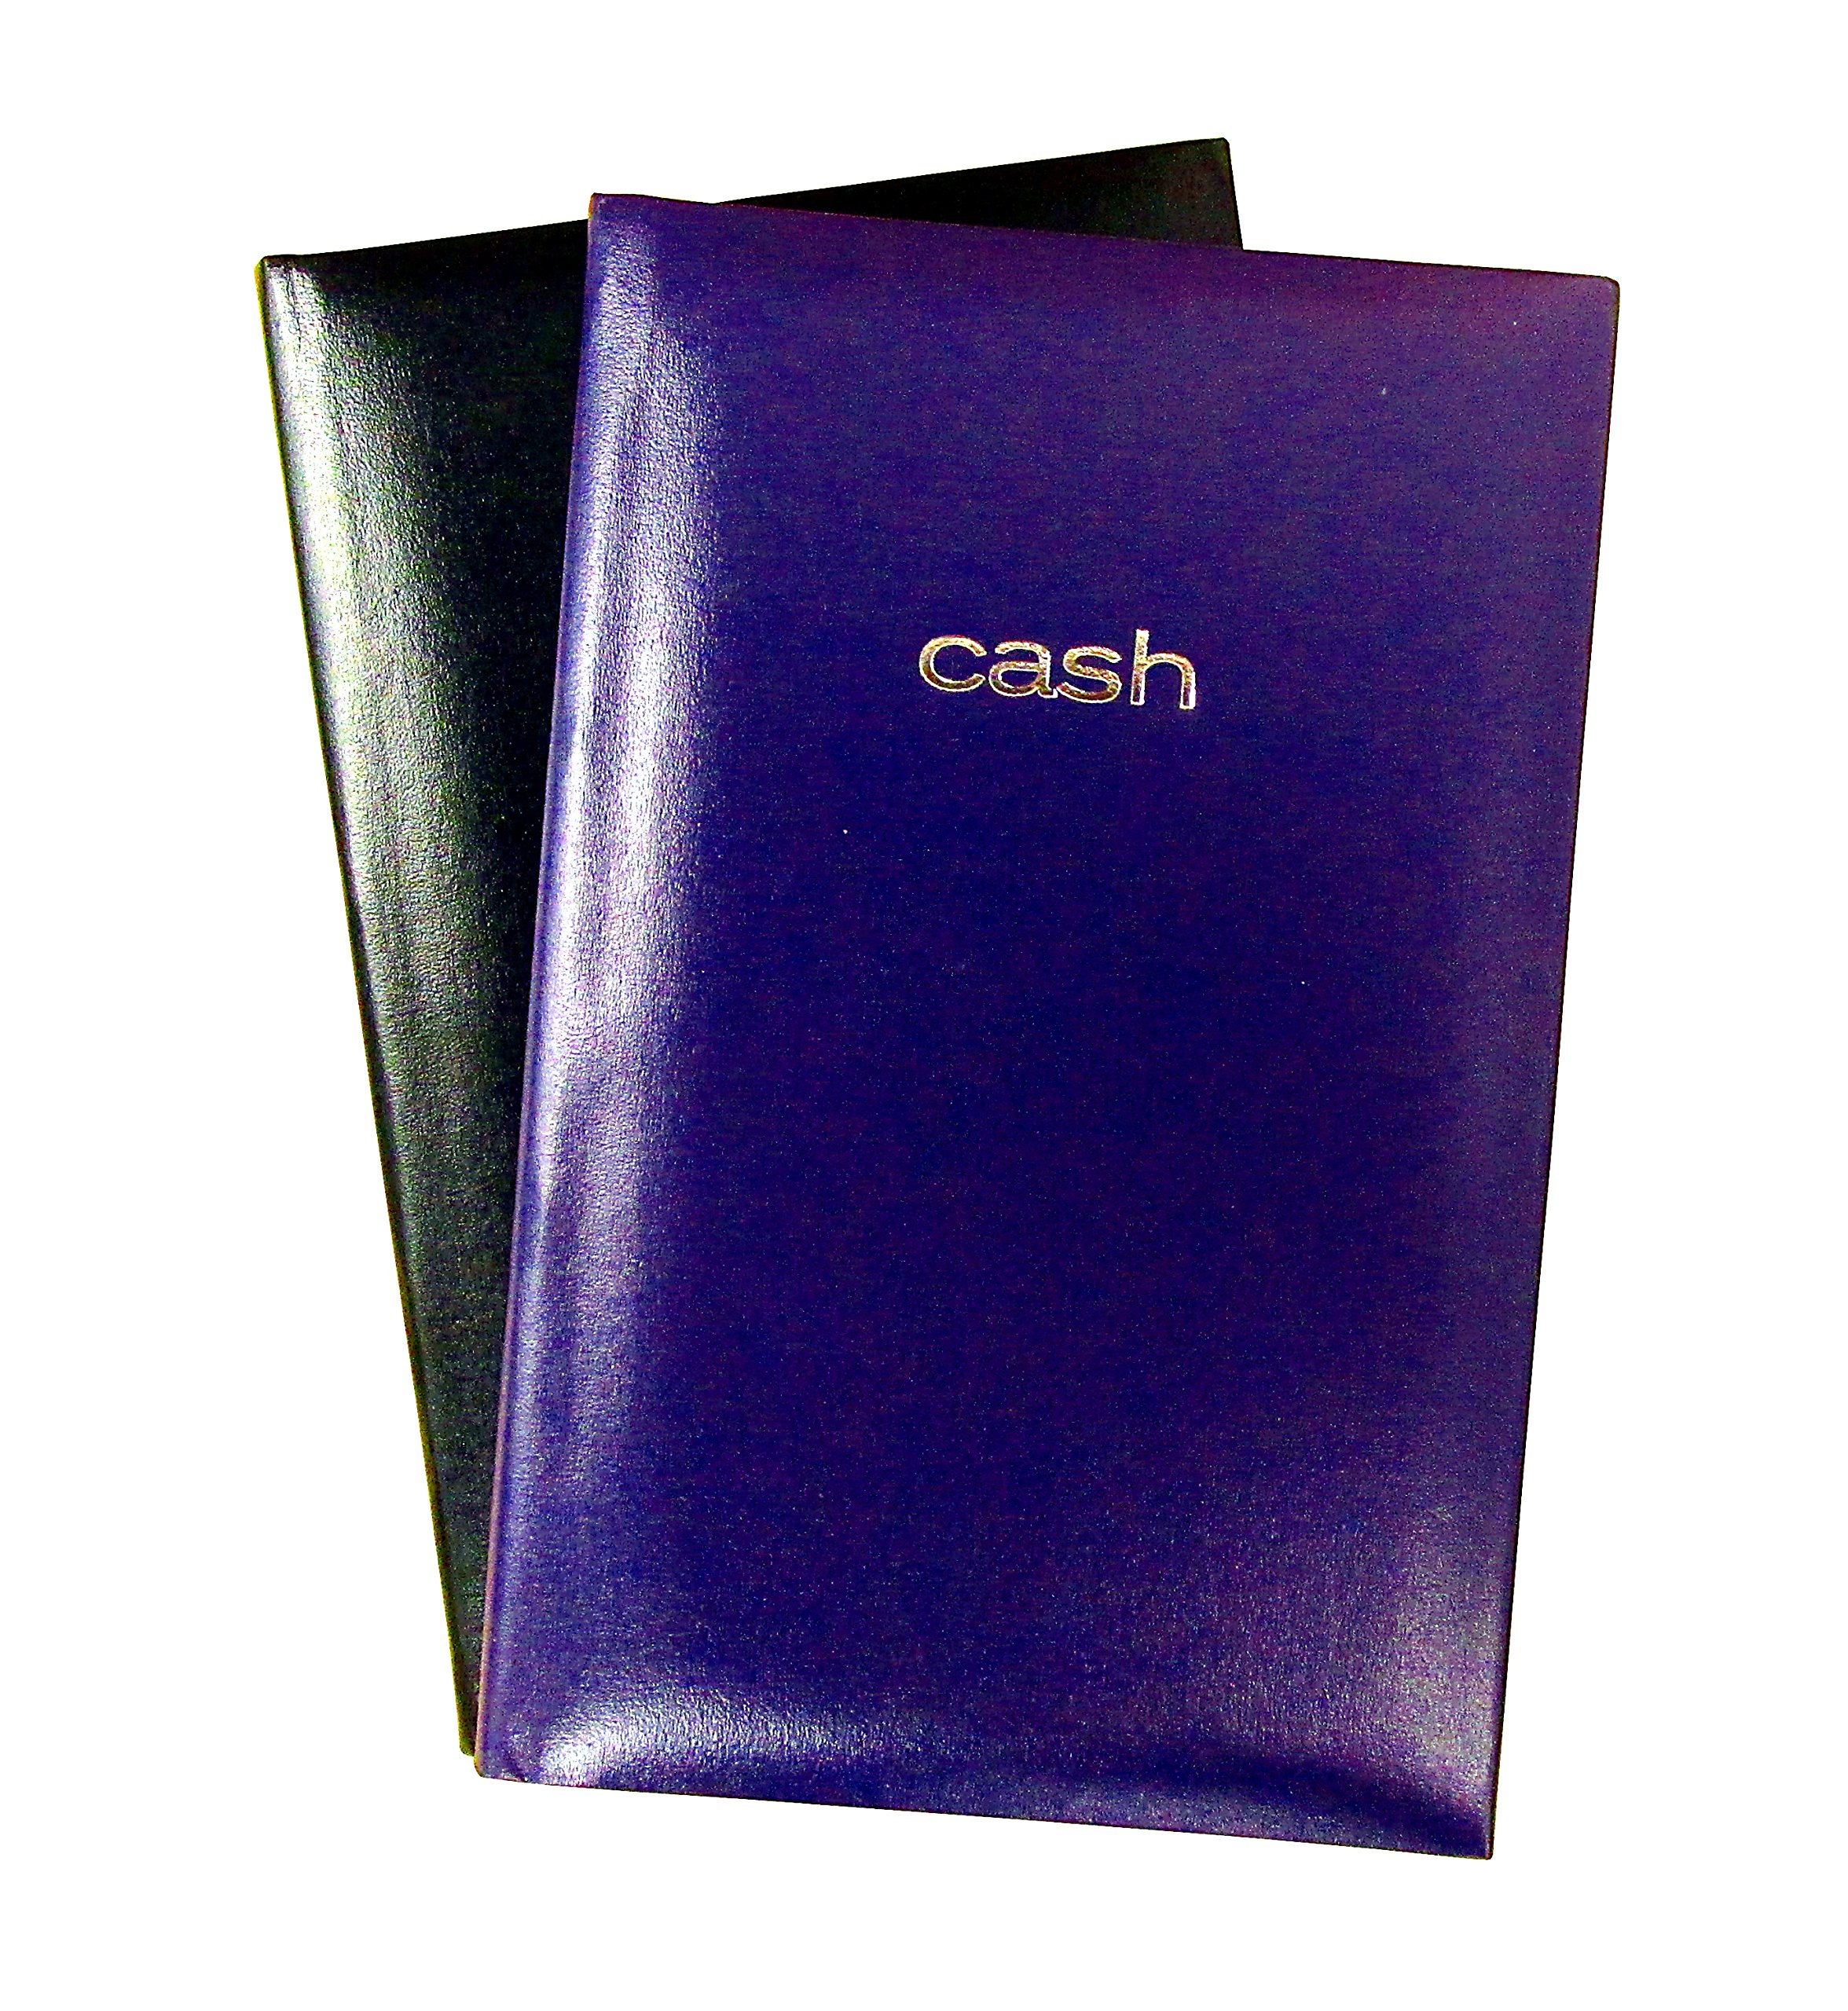 Set of 2 Cash Books, 7.9'' x 5'' Inches, 144 Pages per Book - Hardbound Cover (Colors will Vary)